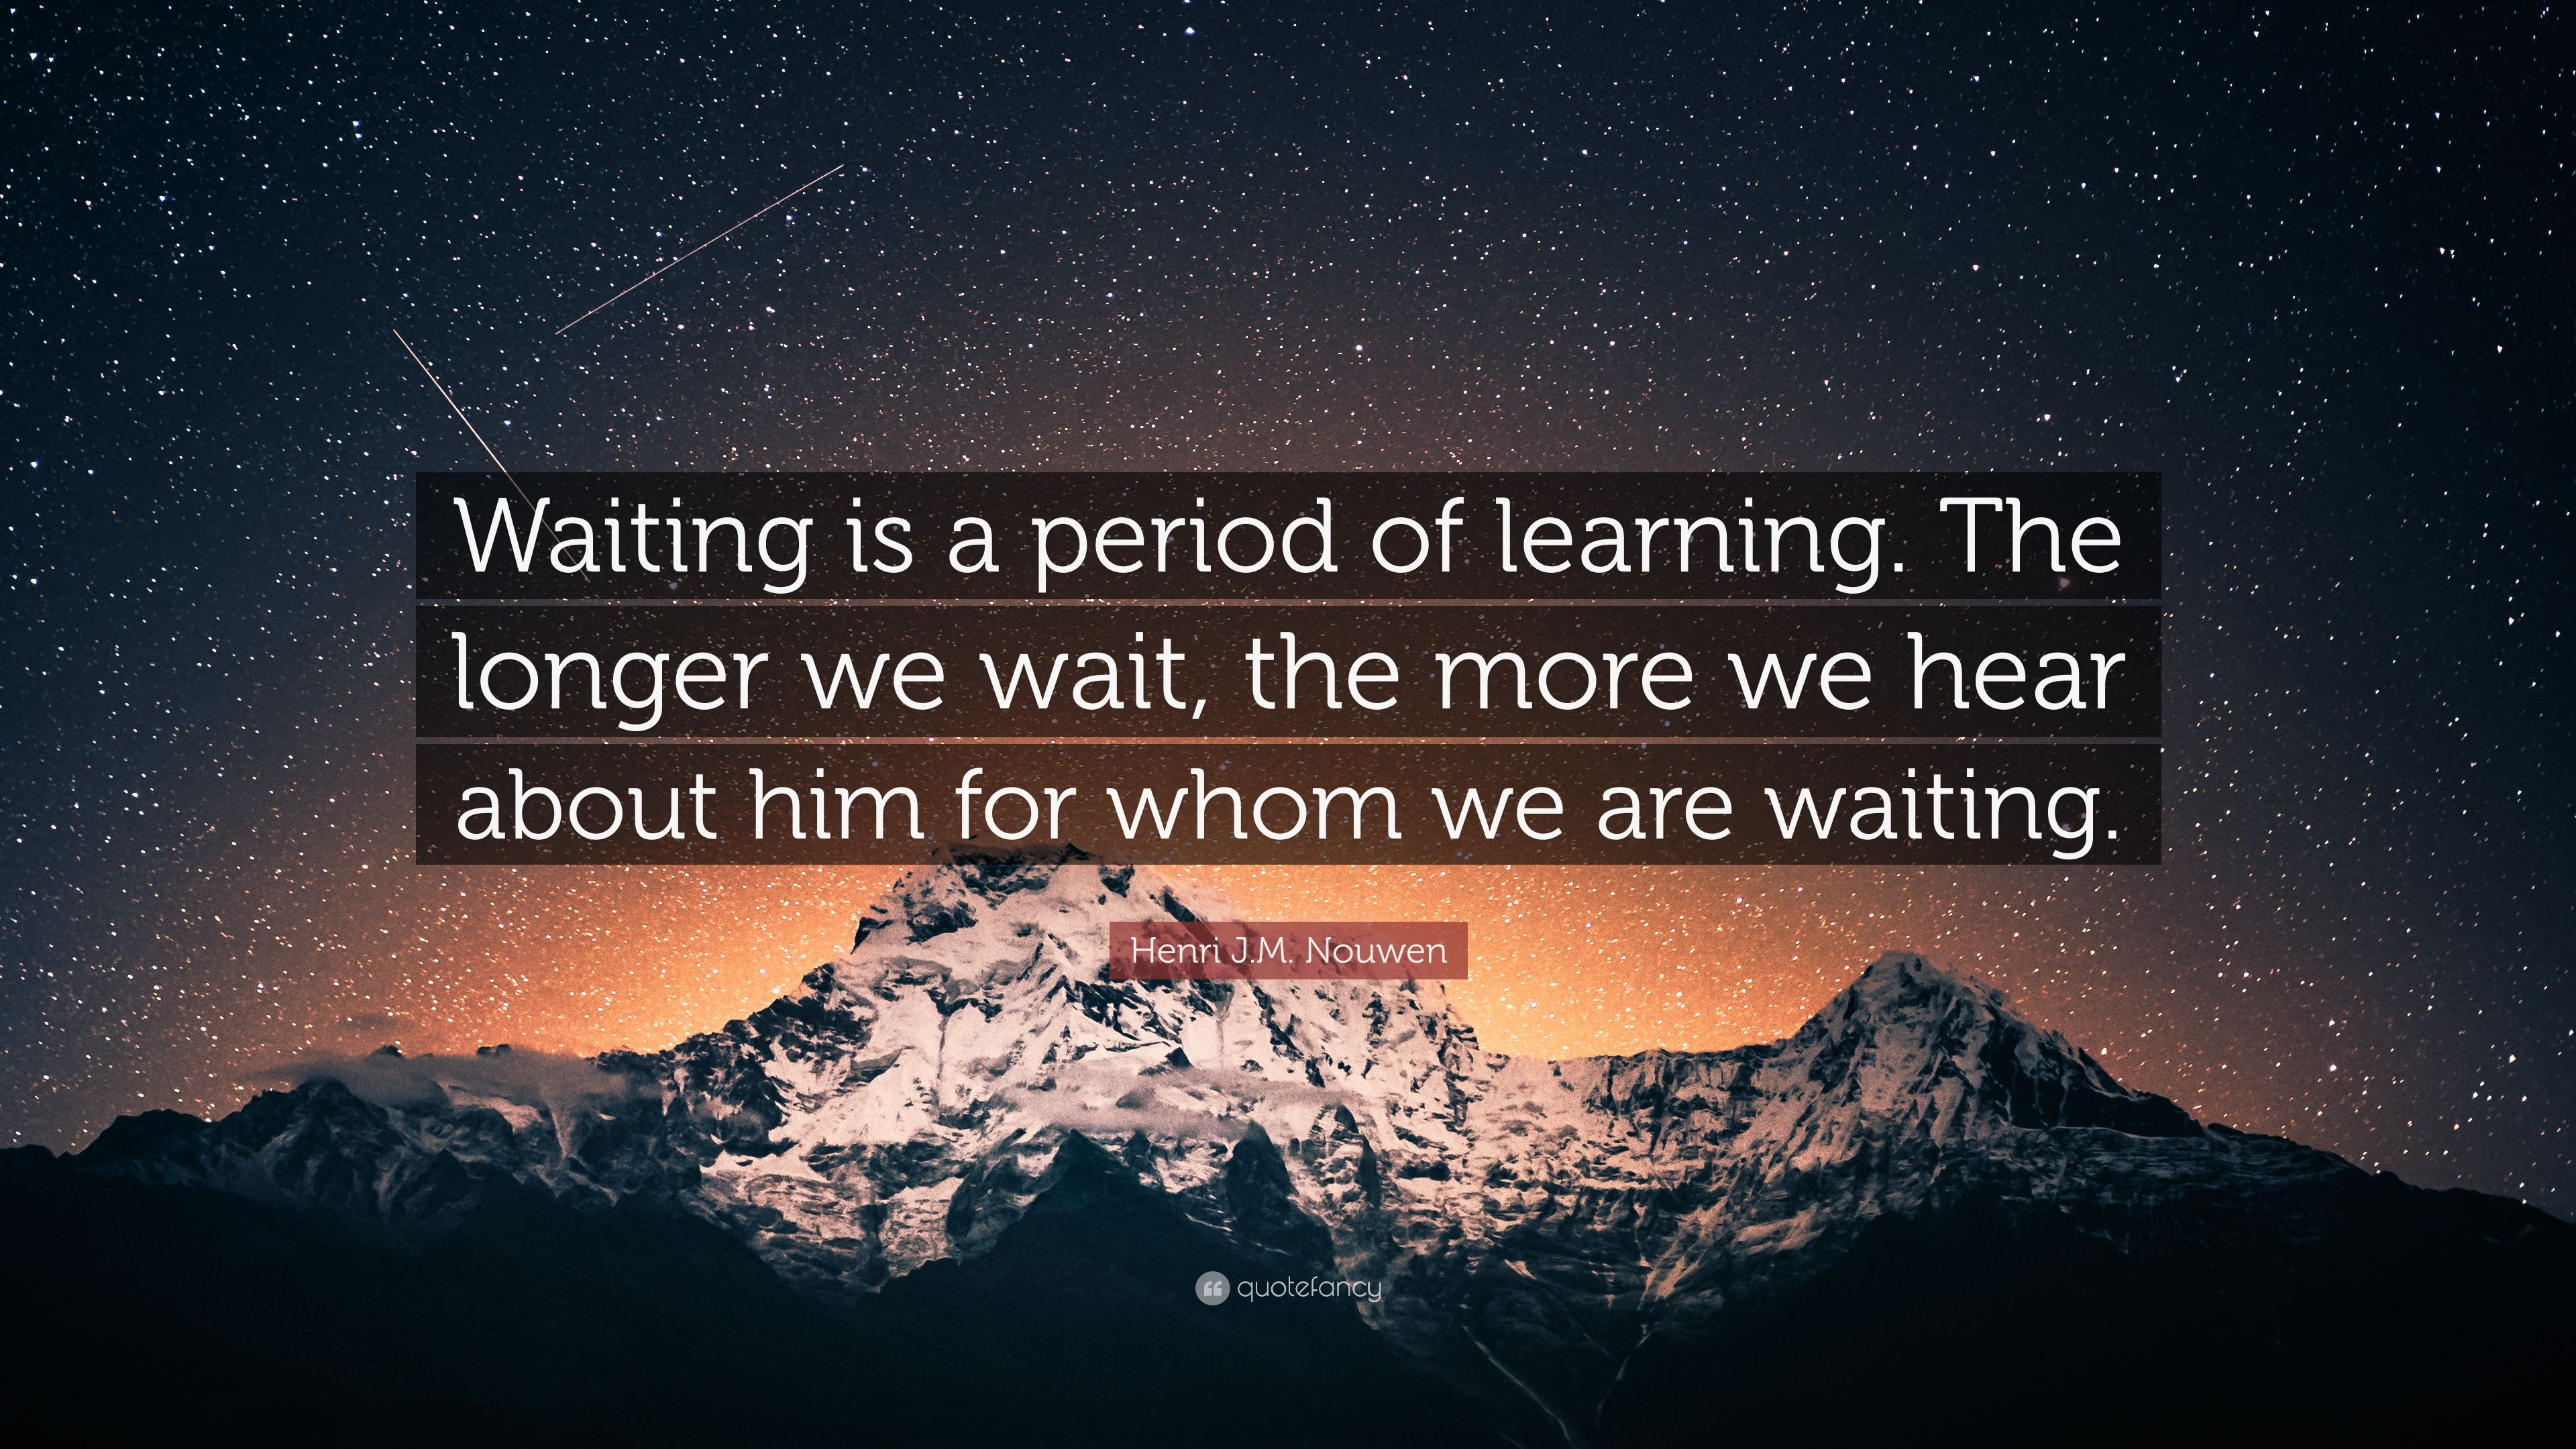 Henri Jm Nouwen Quote Waiting Is A Period Of Learning The